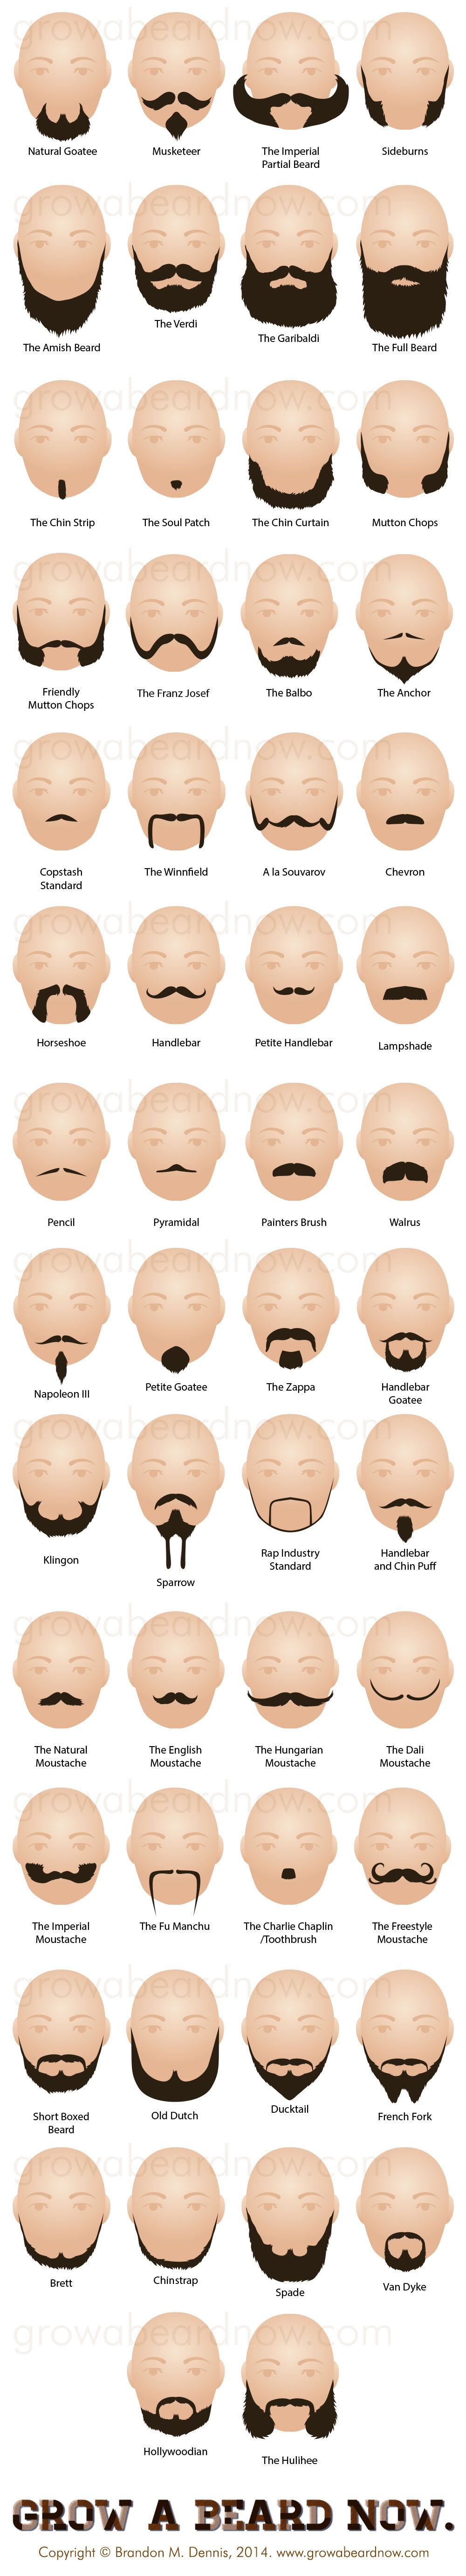 Different types of haircuts for men  facial hair styles  a new collection of all the beard styles